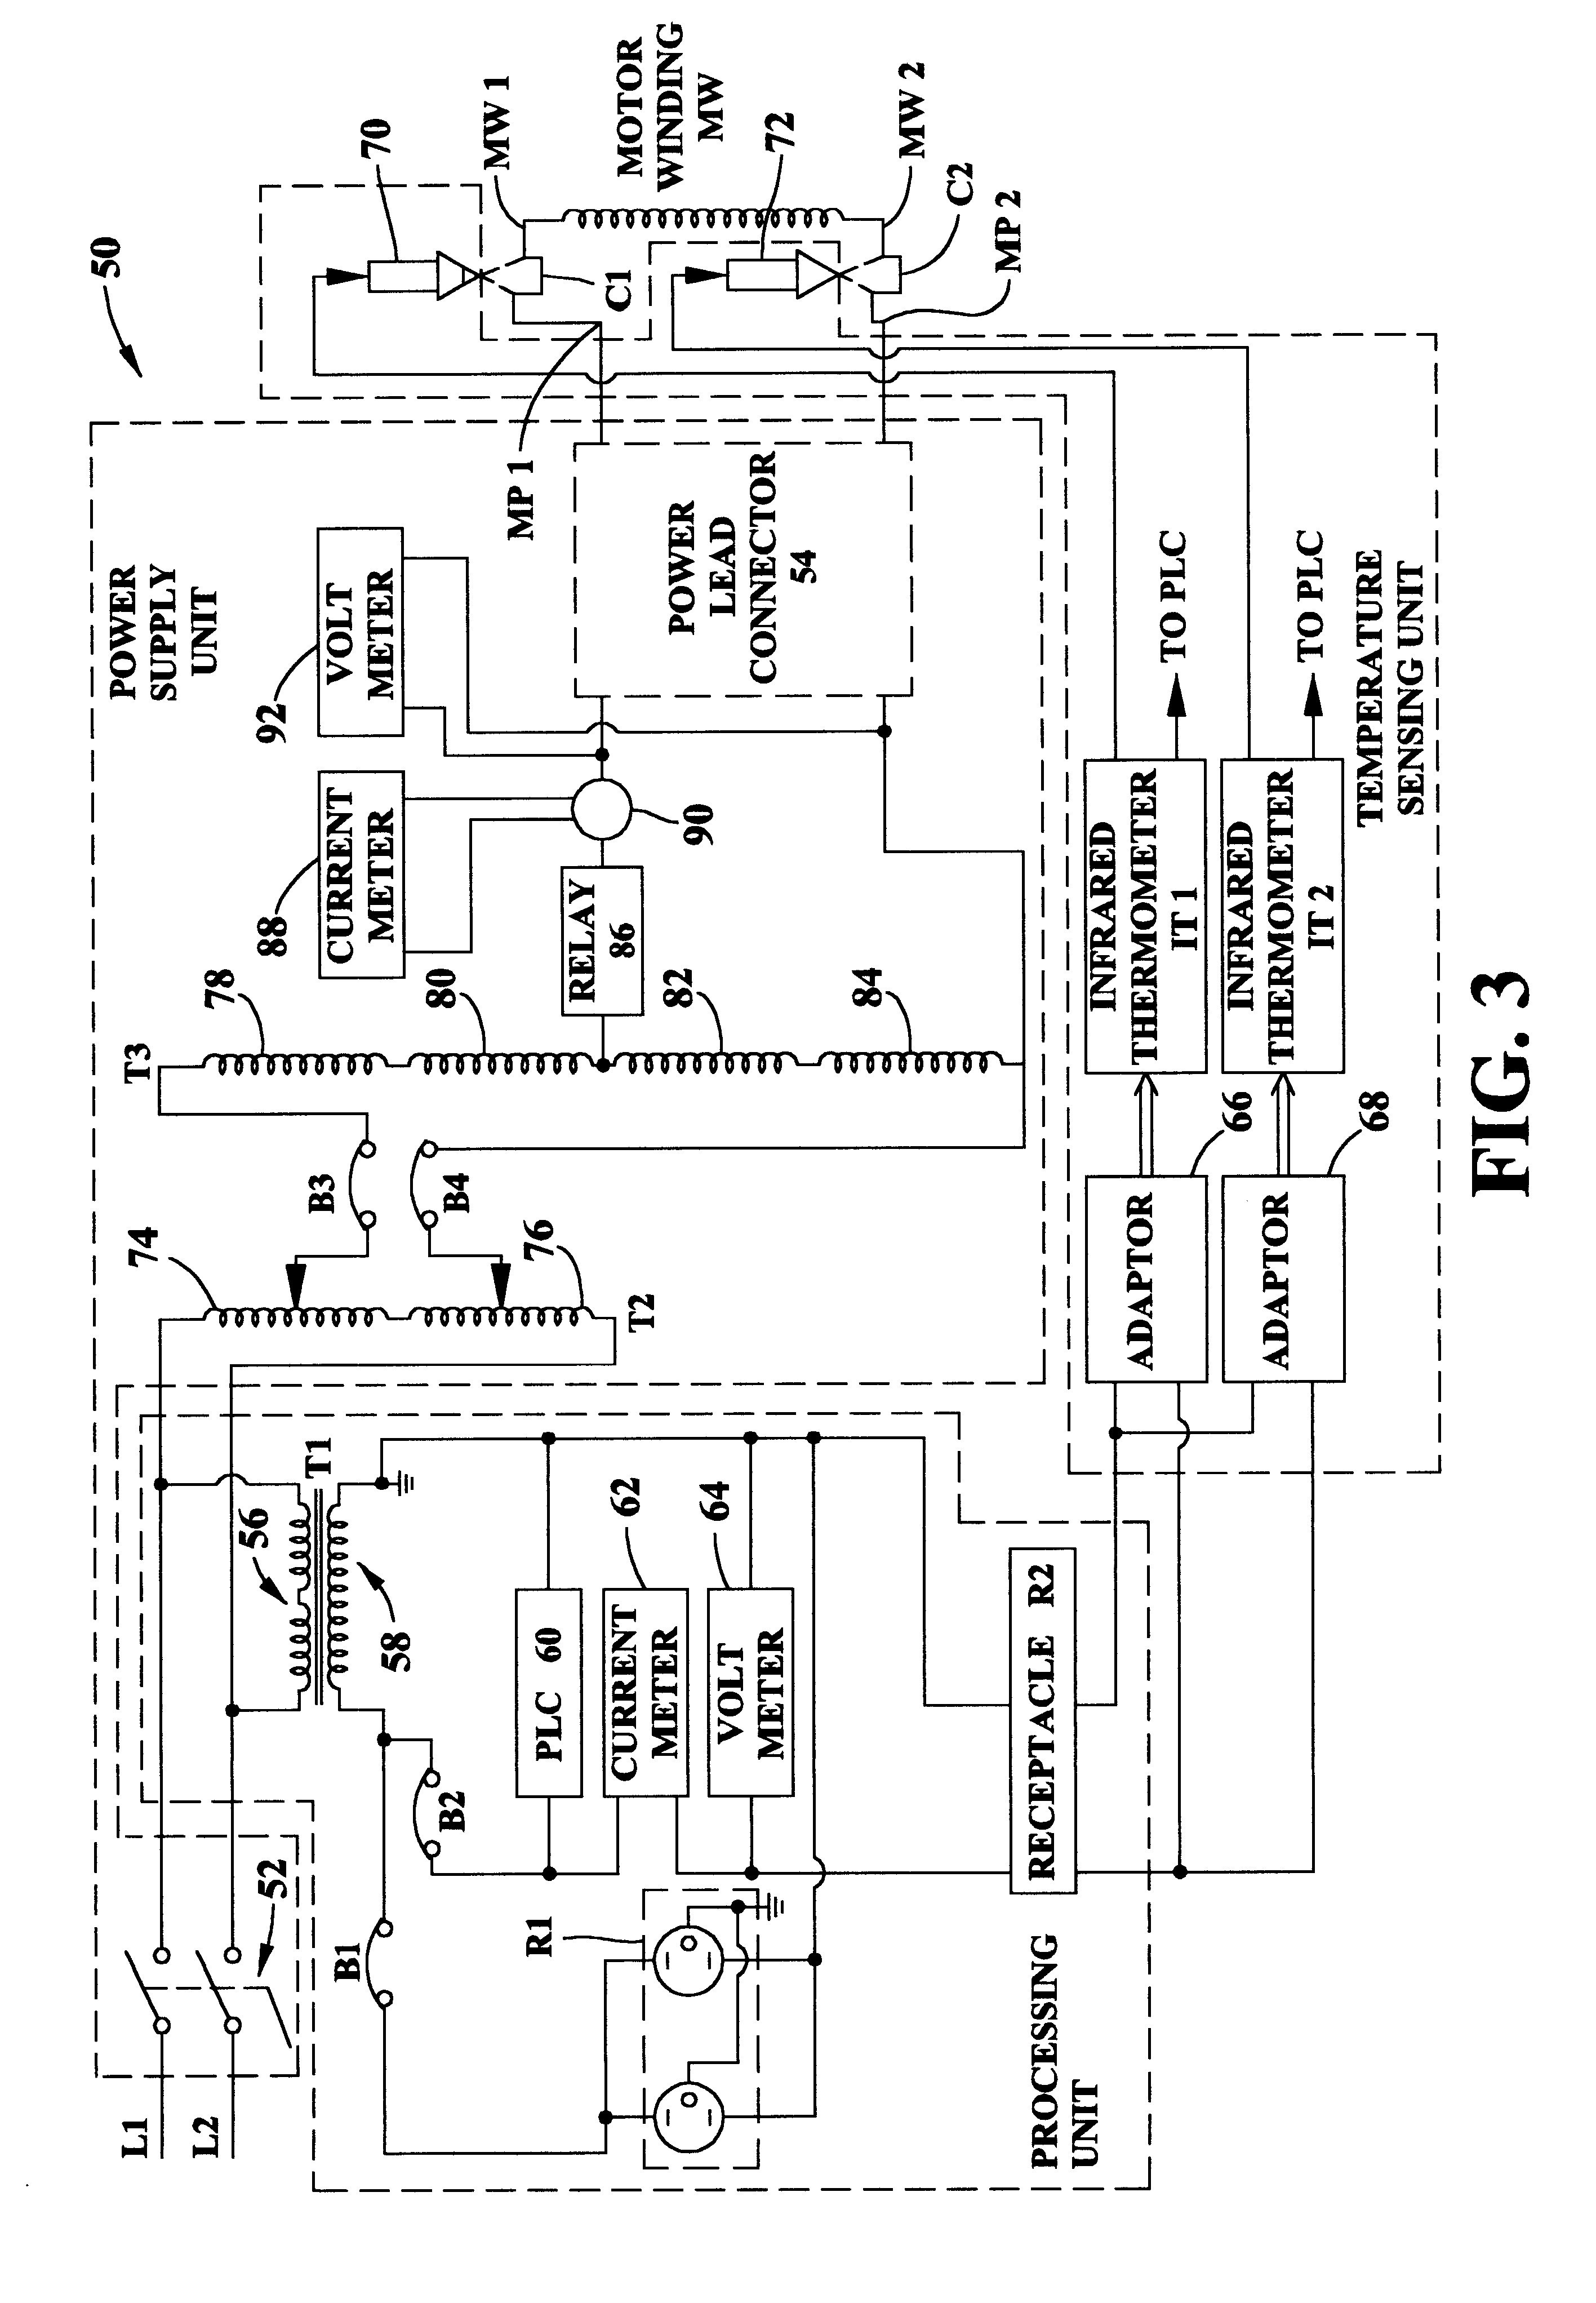 Sx460 Avr Wiring Diagram Sample